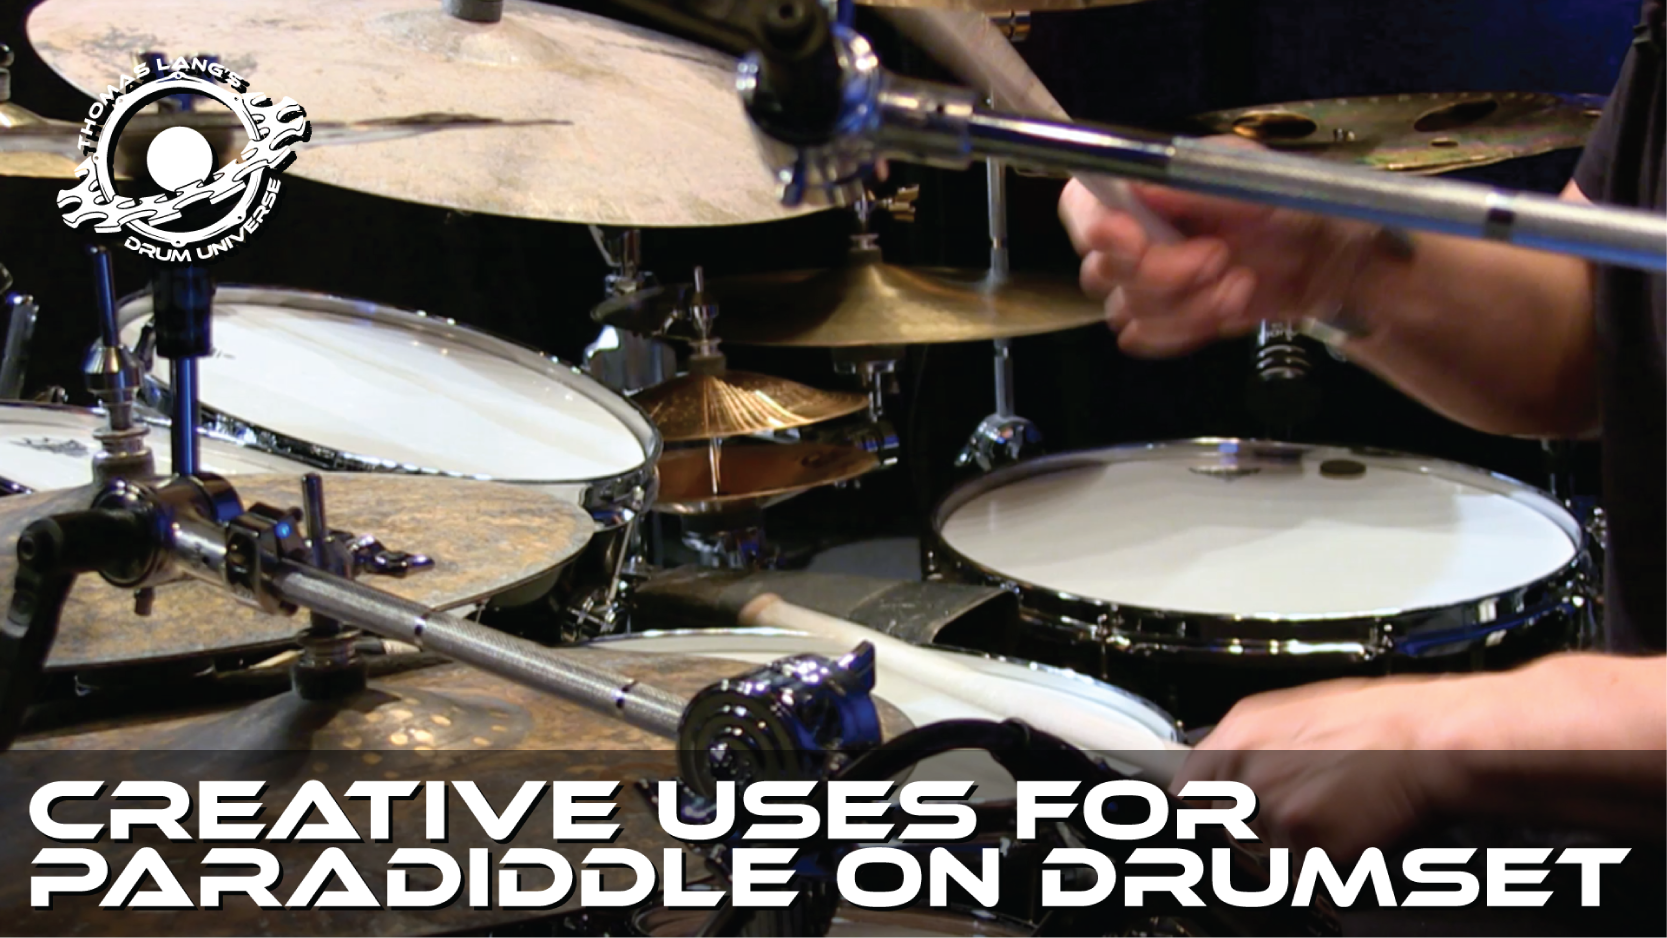 Creative Uses for Paradiddle on Drumset